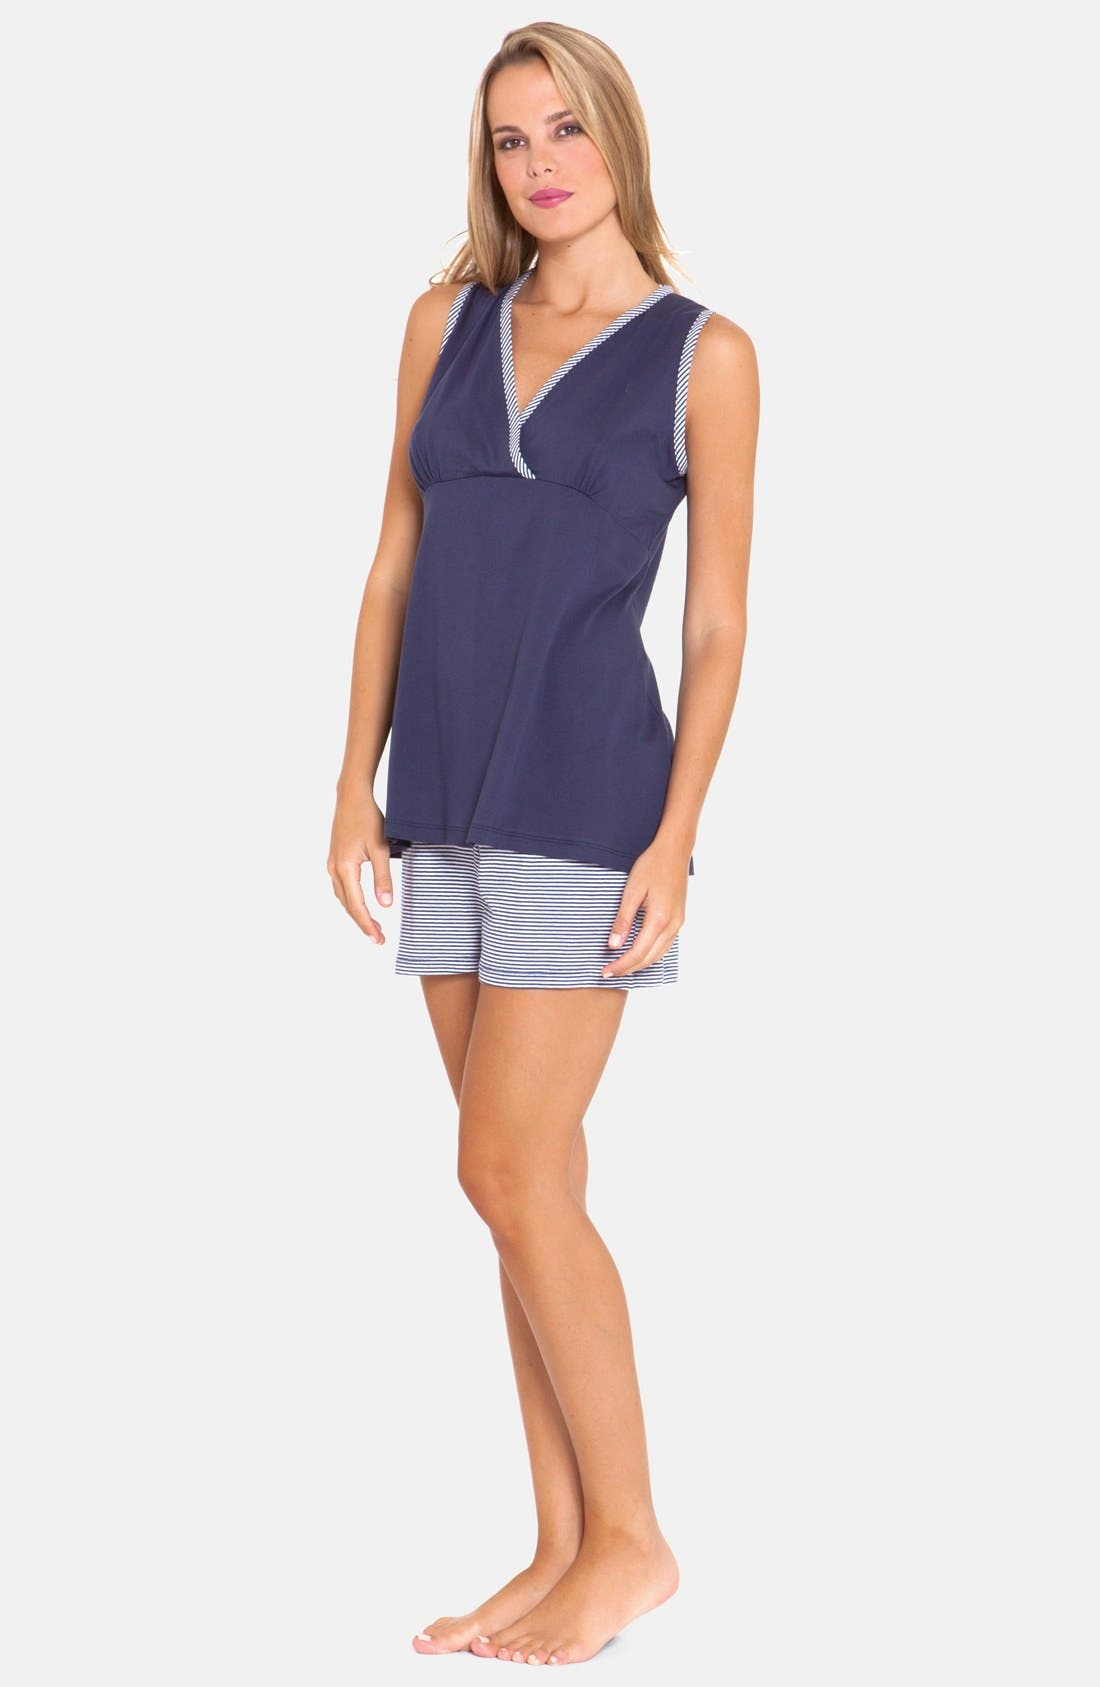 3-Piece Maternity Sleepwear Gift Set,                             Alternate thumbnail 6, color,                             BLUE